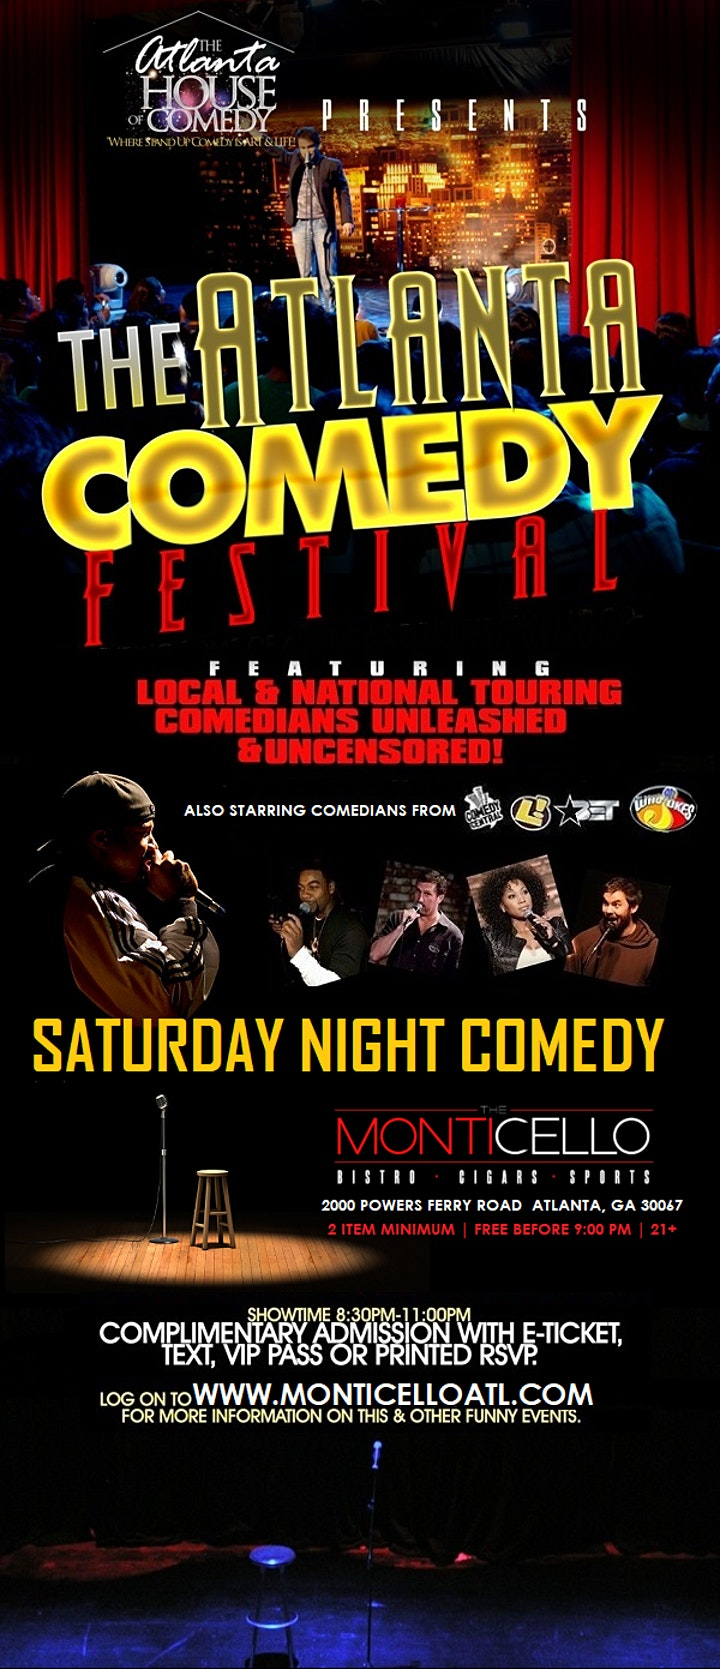 ATL Comedy Festival Weekend image